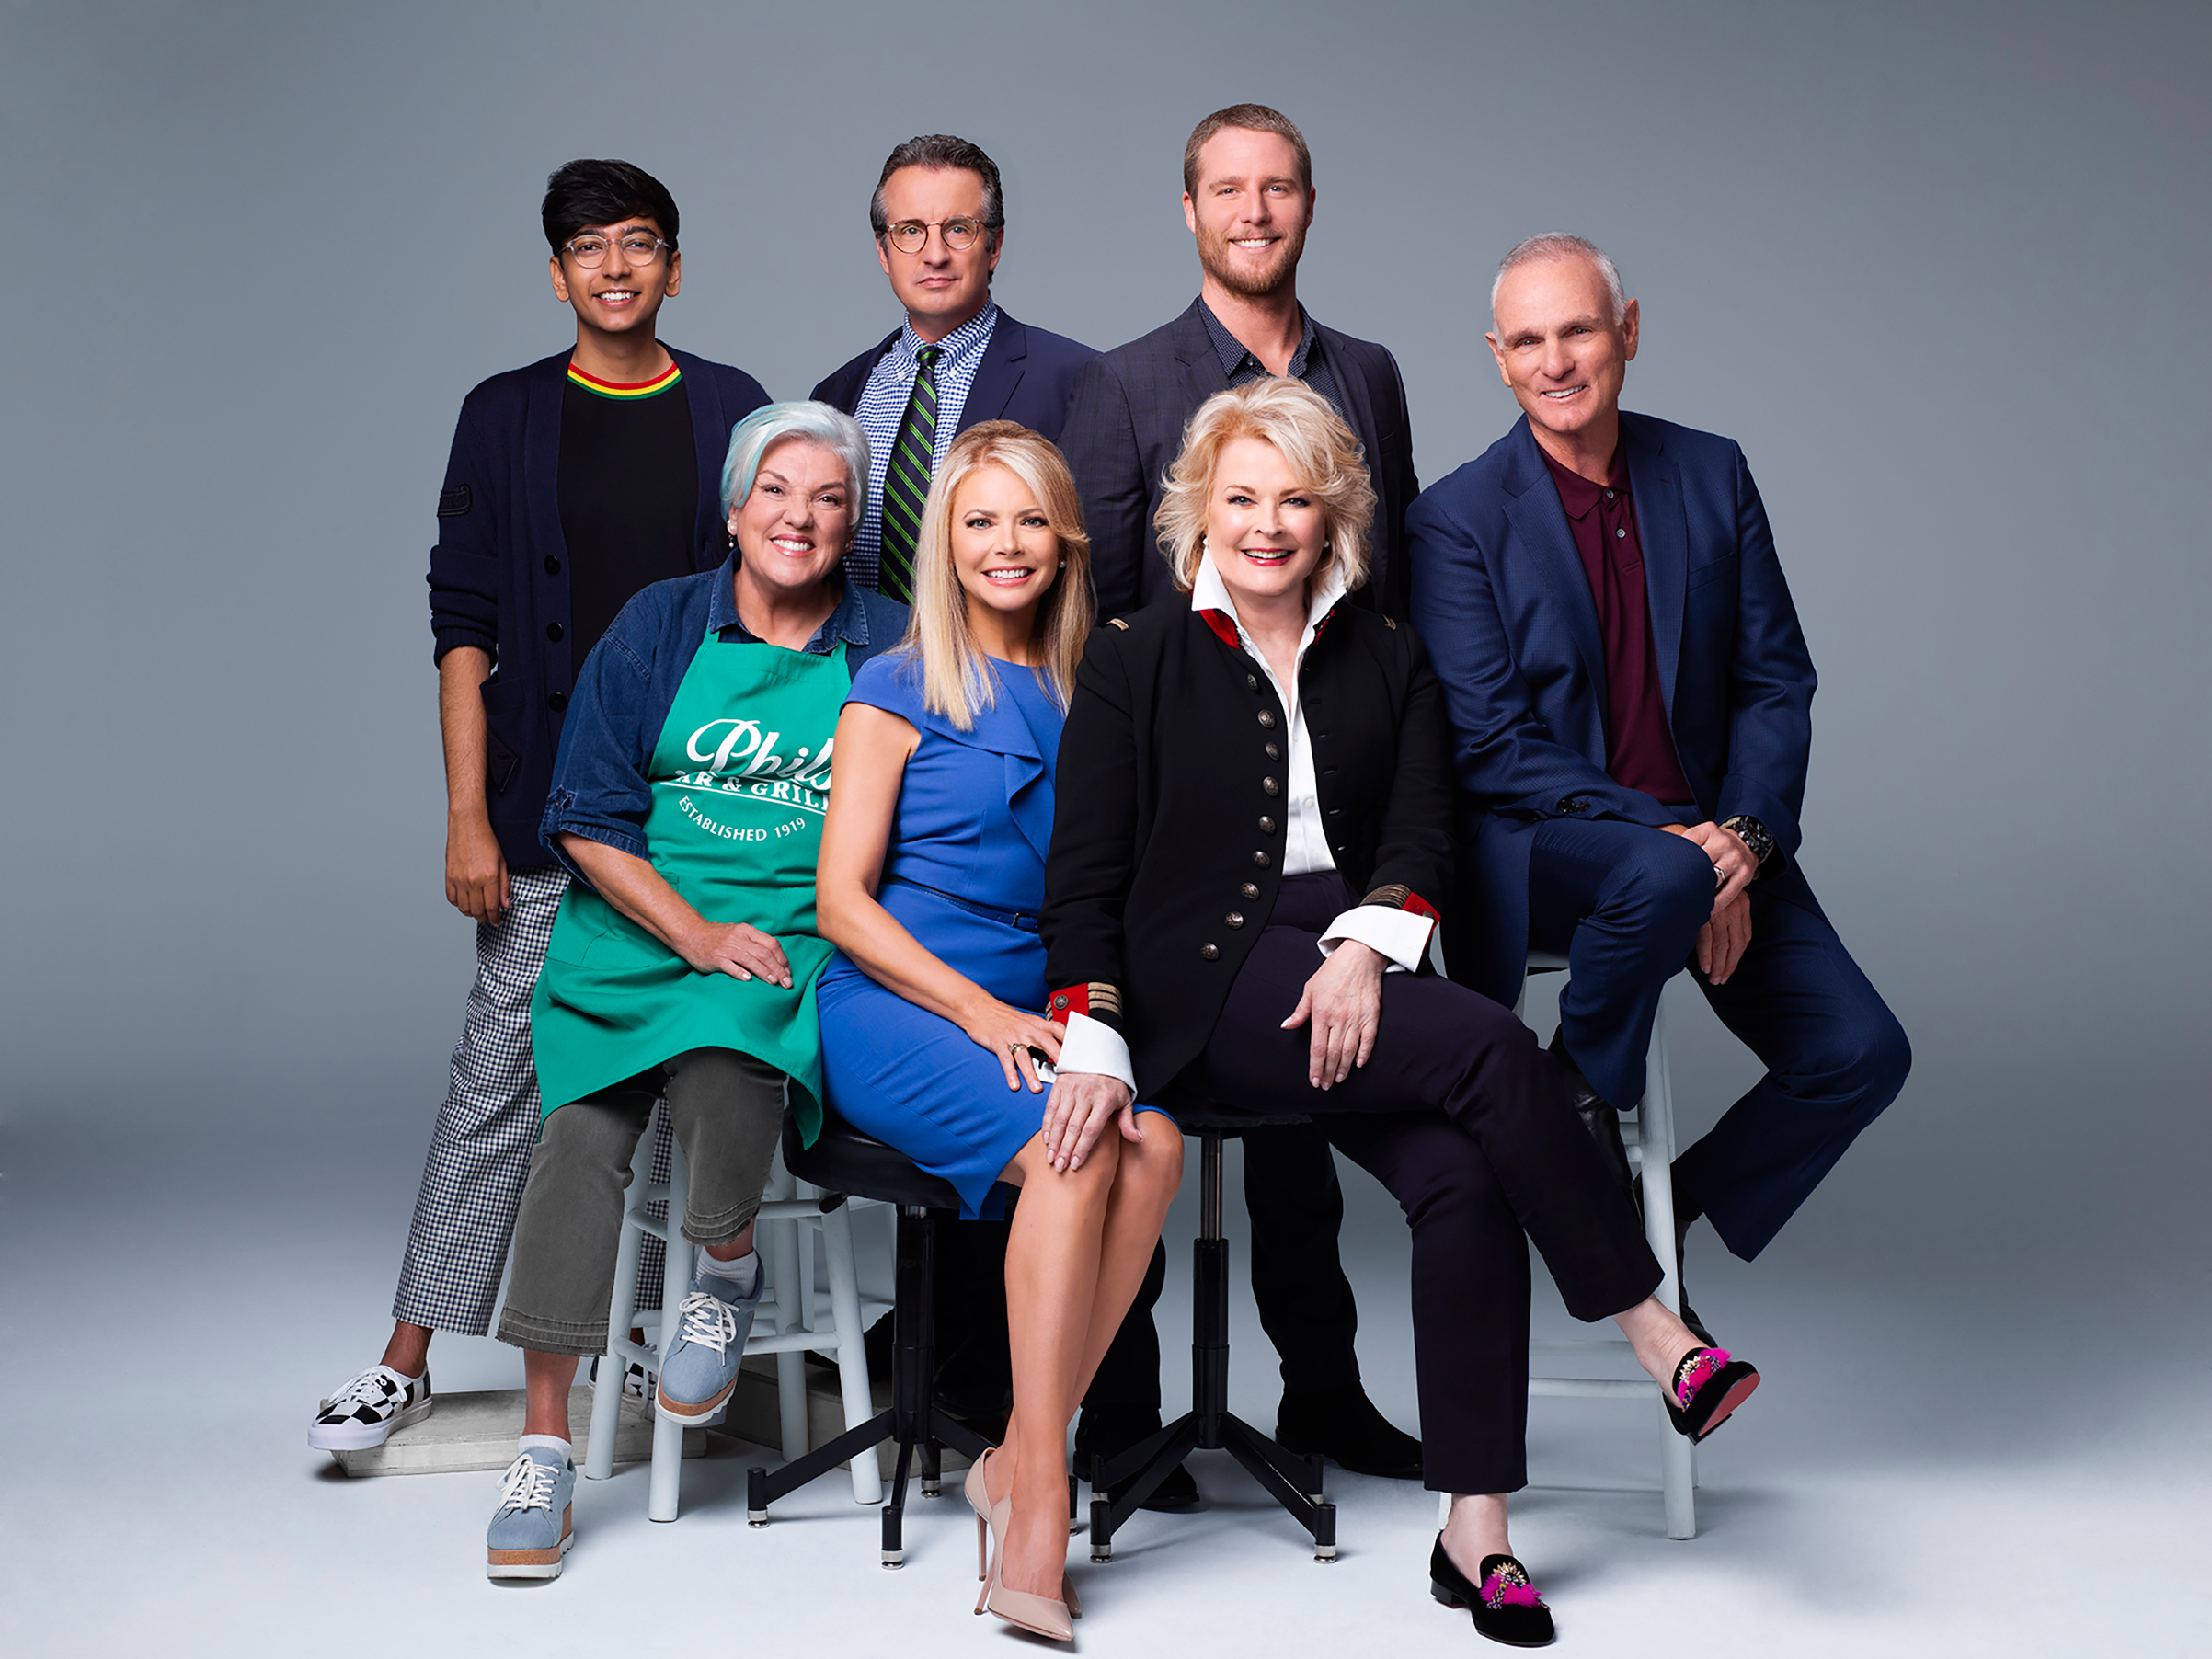 Multiple Emmy Award winners Candice Bergen and series creator Diane English reunite for MURPHY BROWN, the revival of the ground-breaking comedy about the eponymous broadcast news legend and her biting take on current events, now in a world of 24-hour cable, social media, 'fake news' and a vastly different political climate.